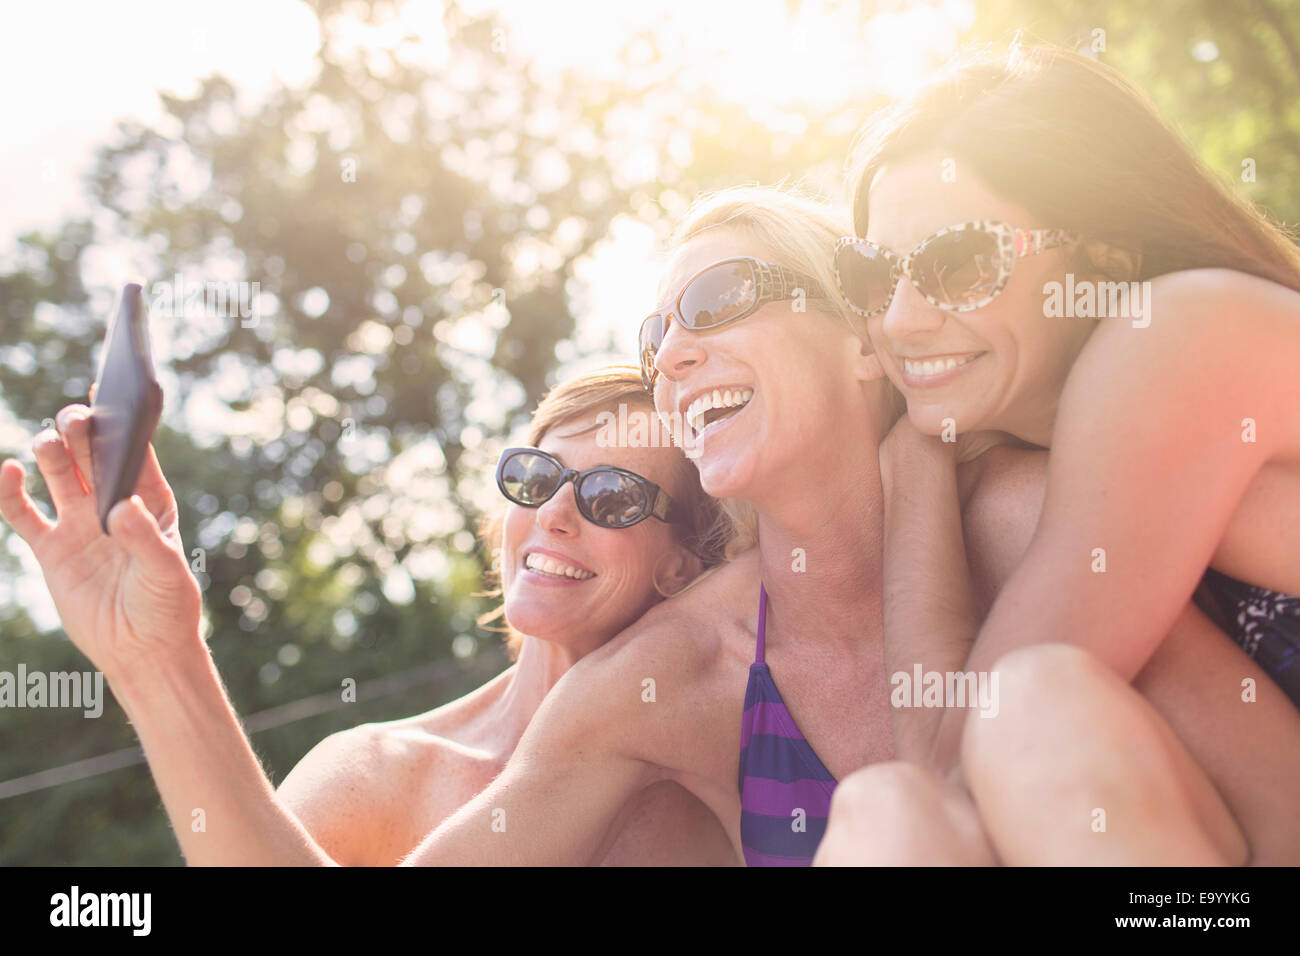 Trois femmes mûres en maillots de bain, taking self portrait Photo Stock